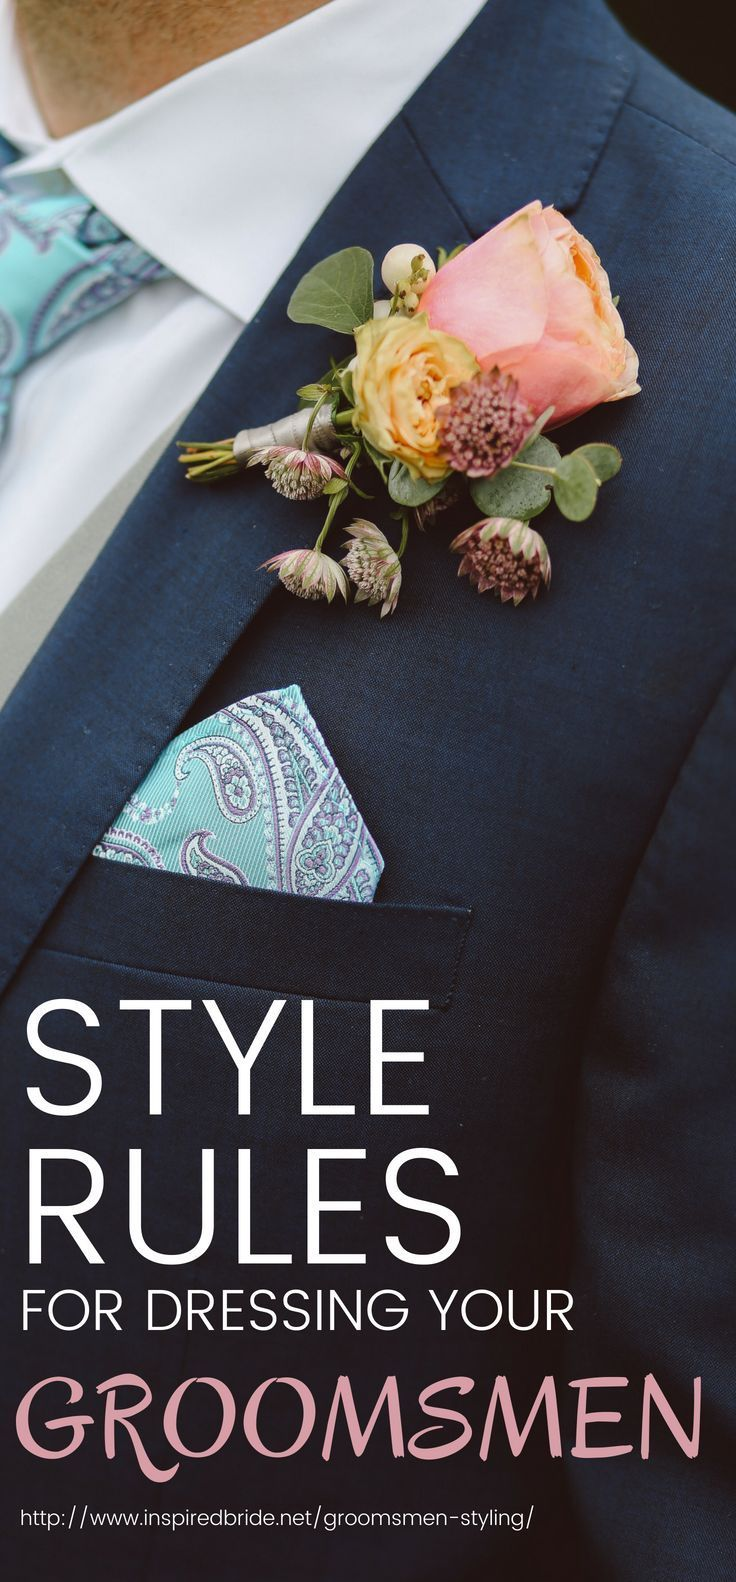 Wedding decorations at church january 2019 Style Rules for Dressing Your Groomsmen  Grooms Fashion  Pinterest